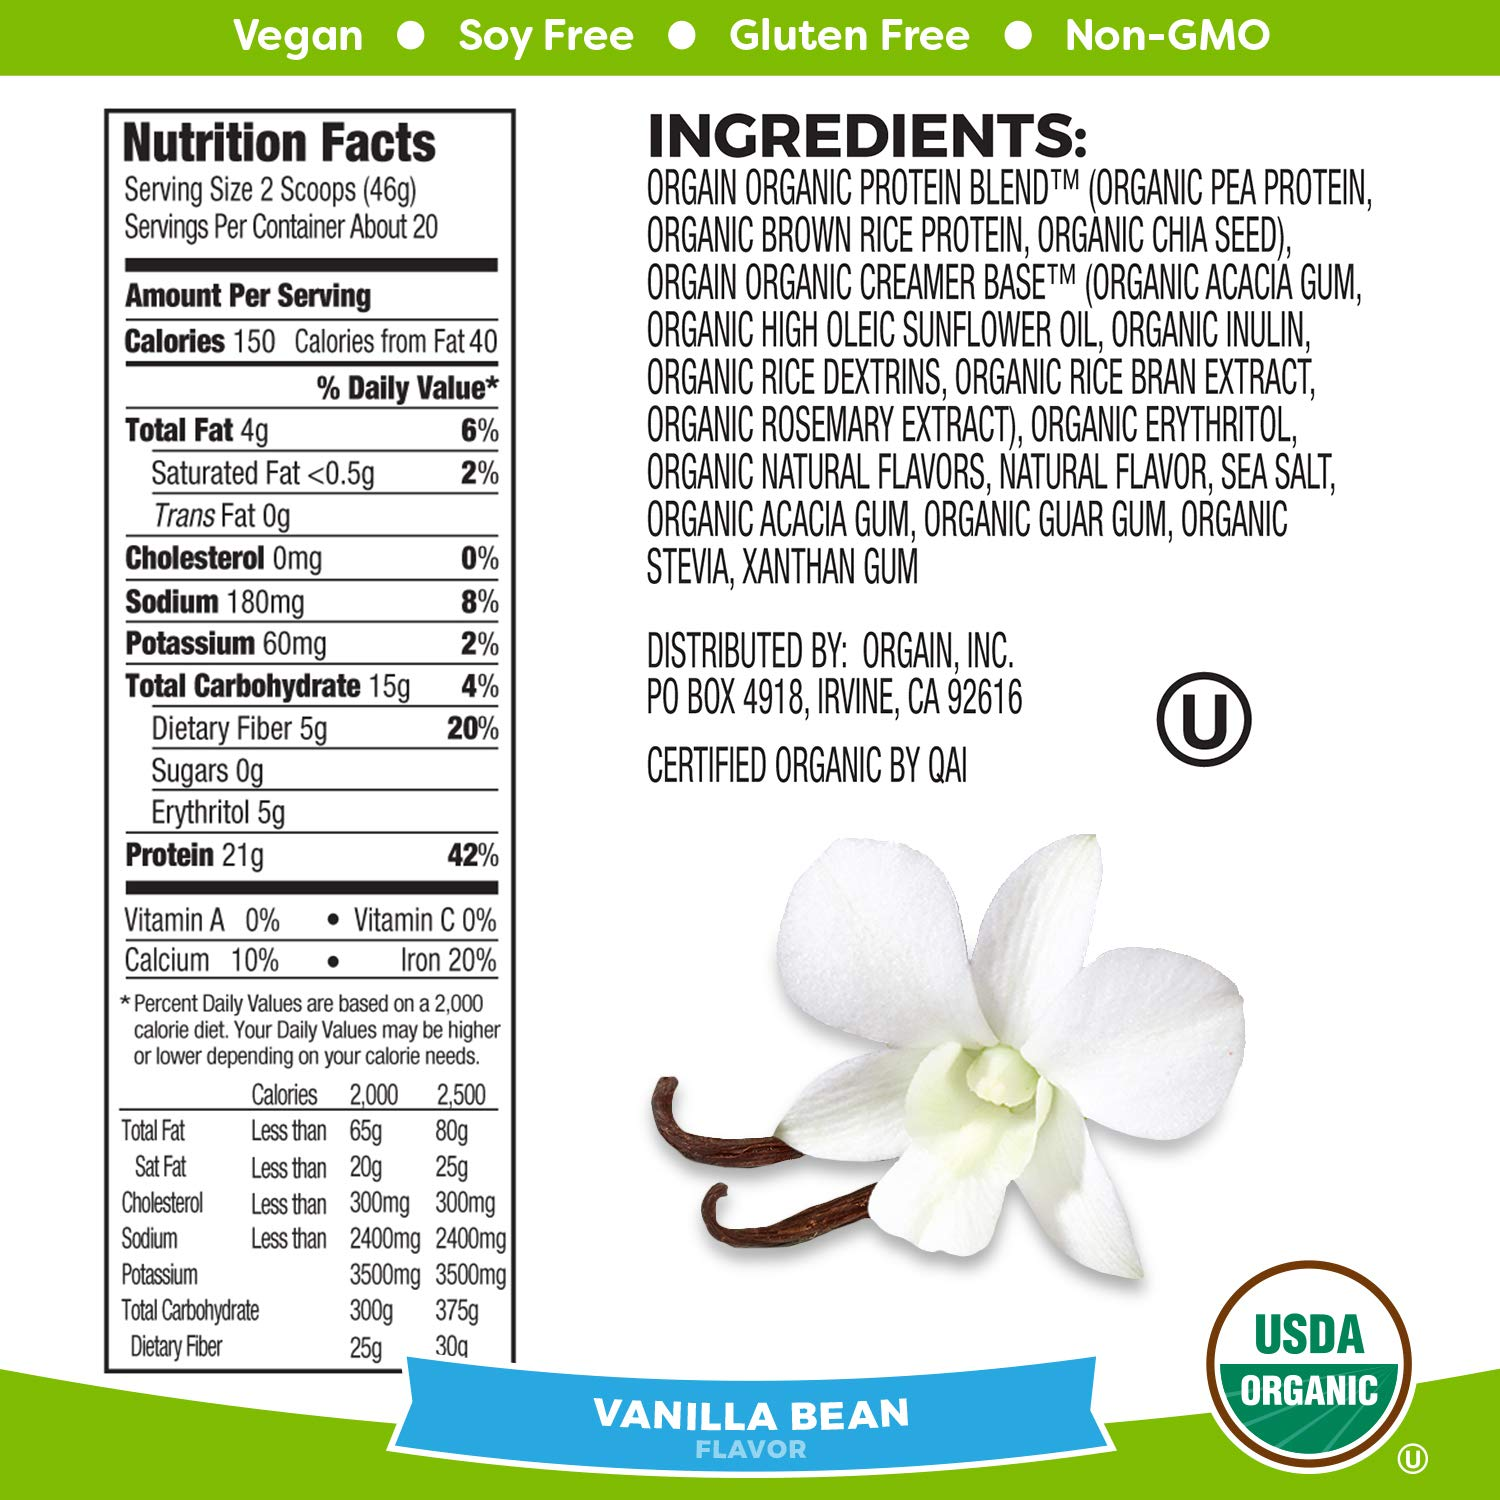 Orgain Organic Plant Based Protein Powder, Vanilla Bean – Vegan, Low Net Carbs, Non Dairy, Gluten Free, Lactose Free, No Sugar Added, Soy Free, Kosher, Non-GMO, 2.03 Pound